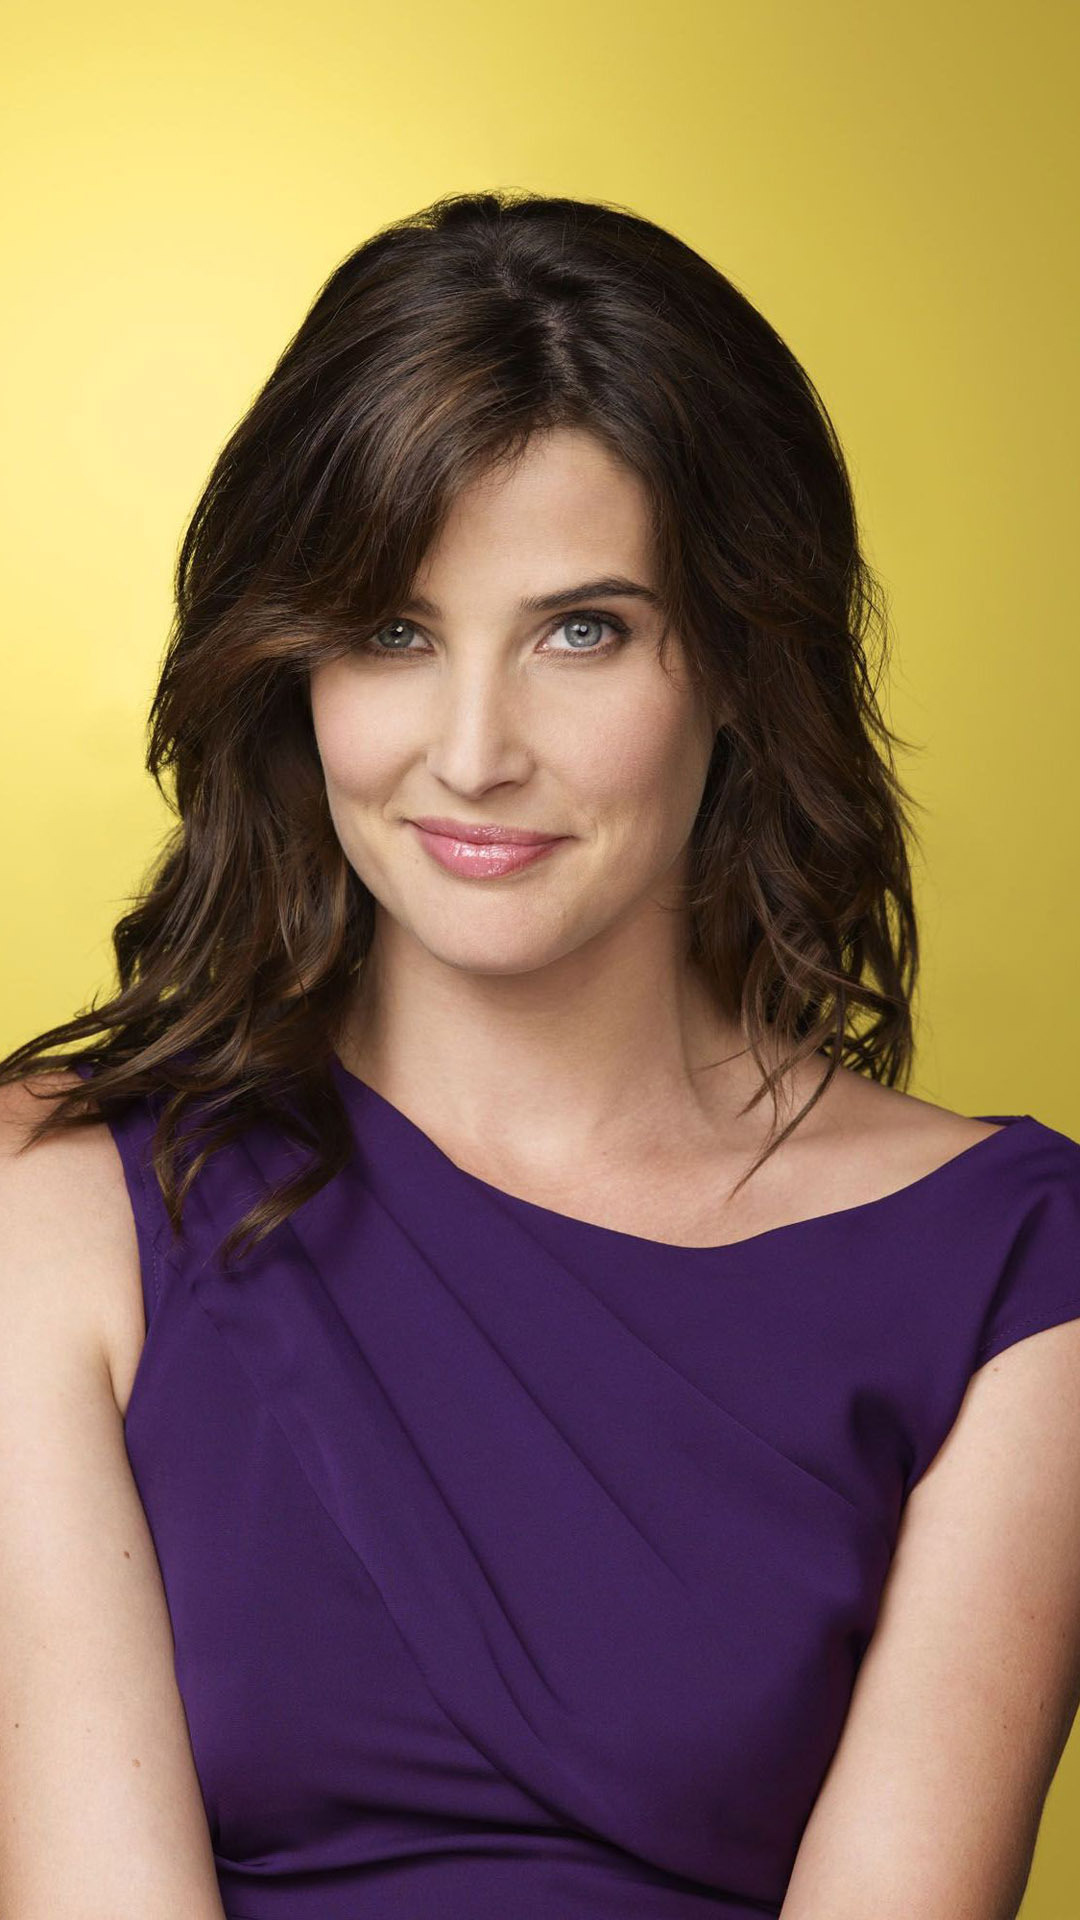 cobie smulders фотоcobie smulders фото, cobie smulders 2016, cobie smulders кинопоиск, cobie smulders 2017, cobie smulders инстаграм, cobie smulders wiki, cobie smulders gif hunt, cobie smulders husband, cobie smulders insta, cobie smulders maxim hd, cobie smulders wikipedia, cobie smulders fansite, cobie smulders site, cobie smulders рак, cobie smulders imdb, cobie smulders photoshoots, cobie smulders son, cobie smulders interview, cobie smulders and josh radnor together, cobie smulders gallery